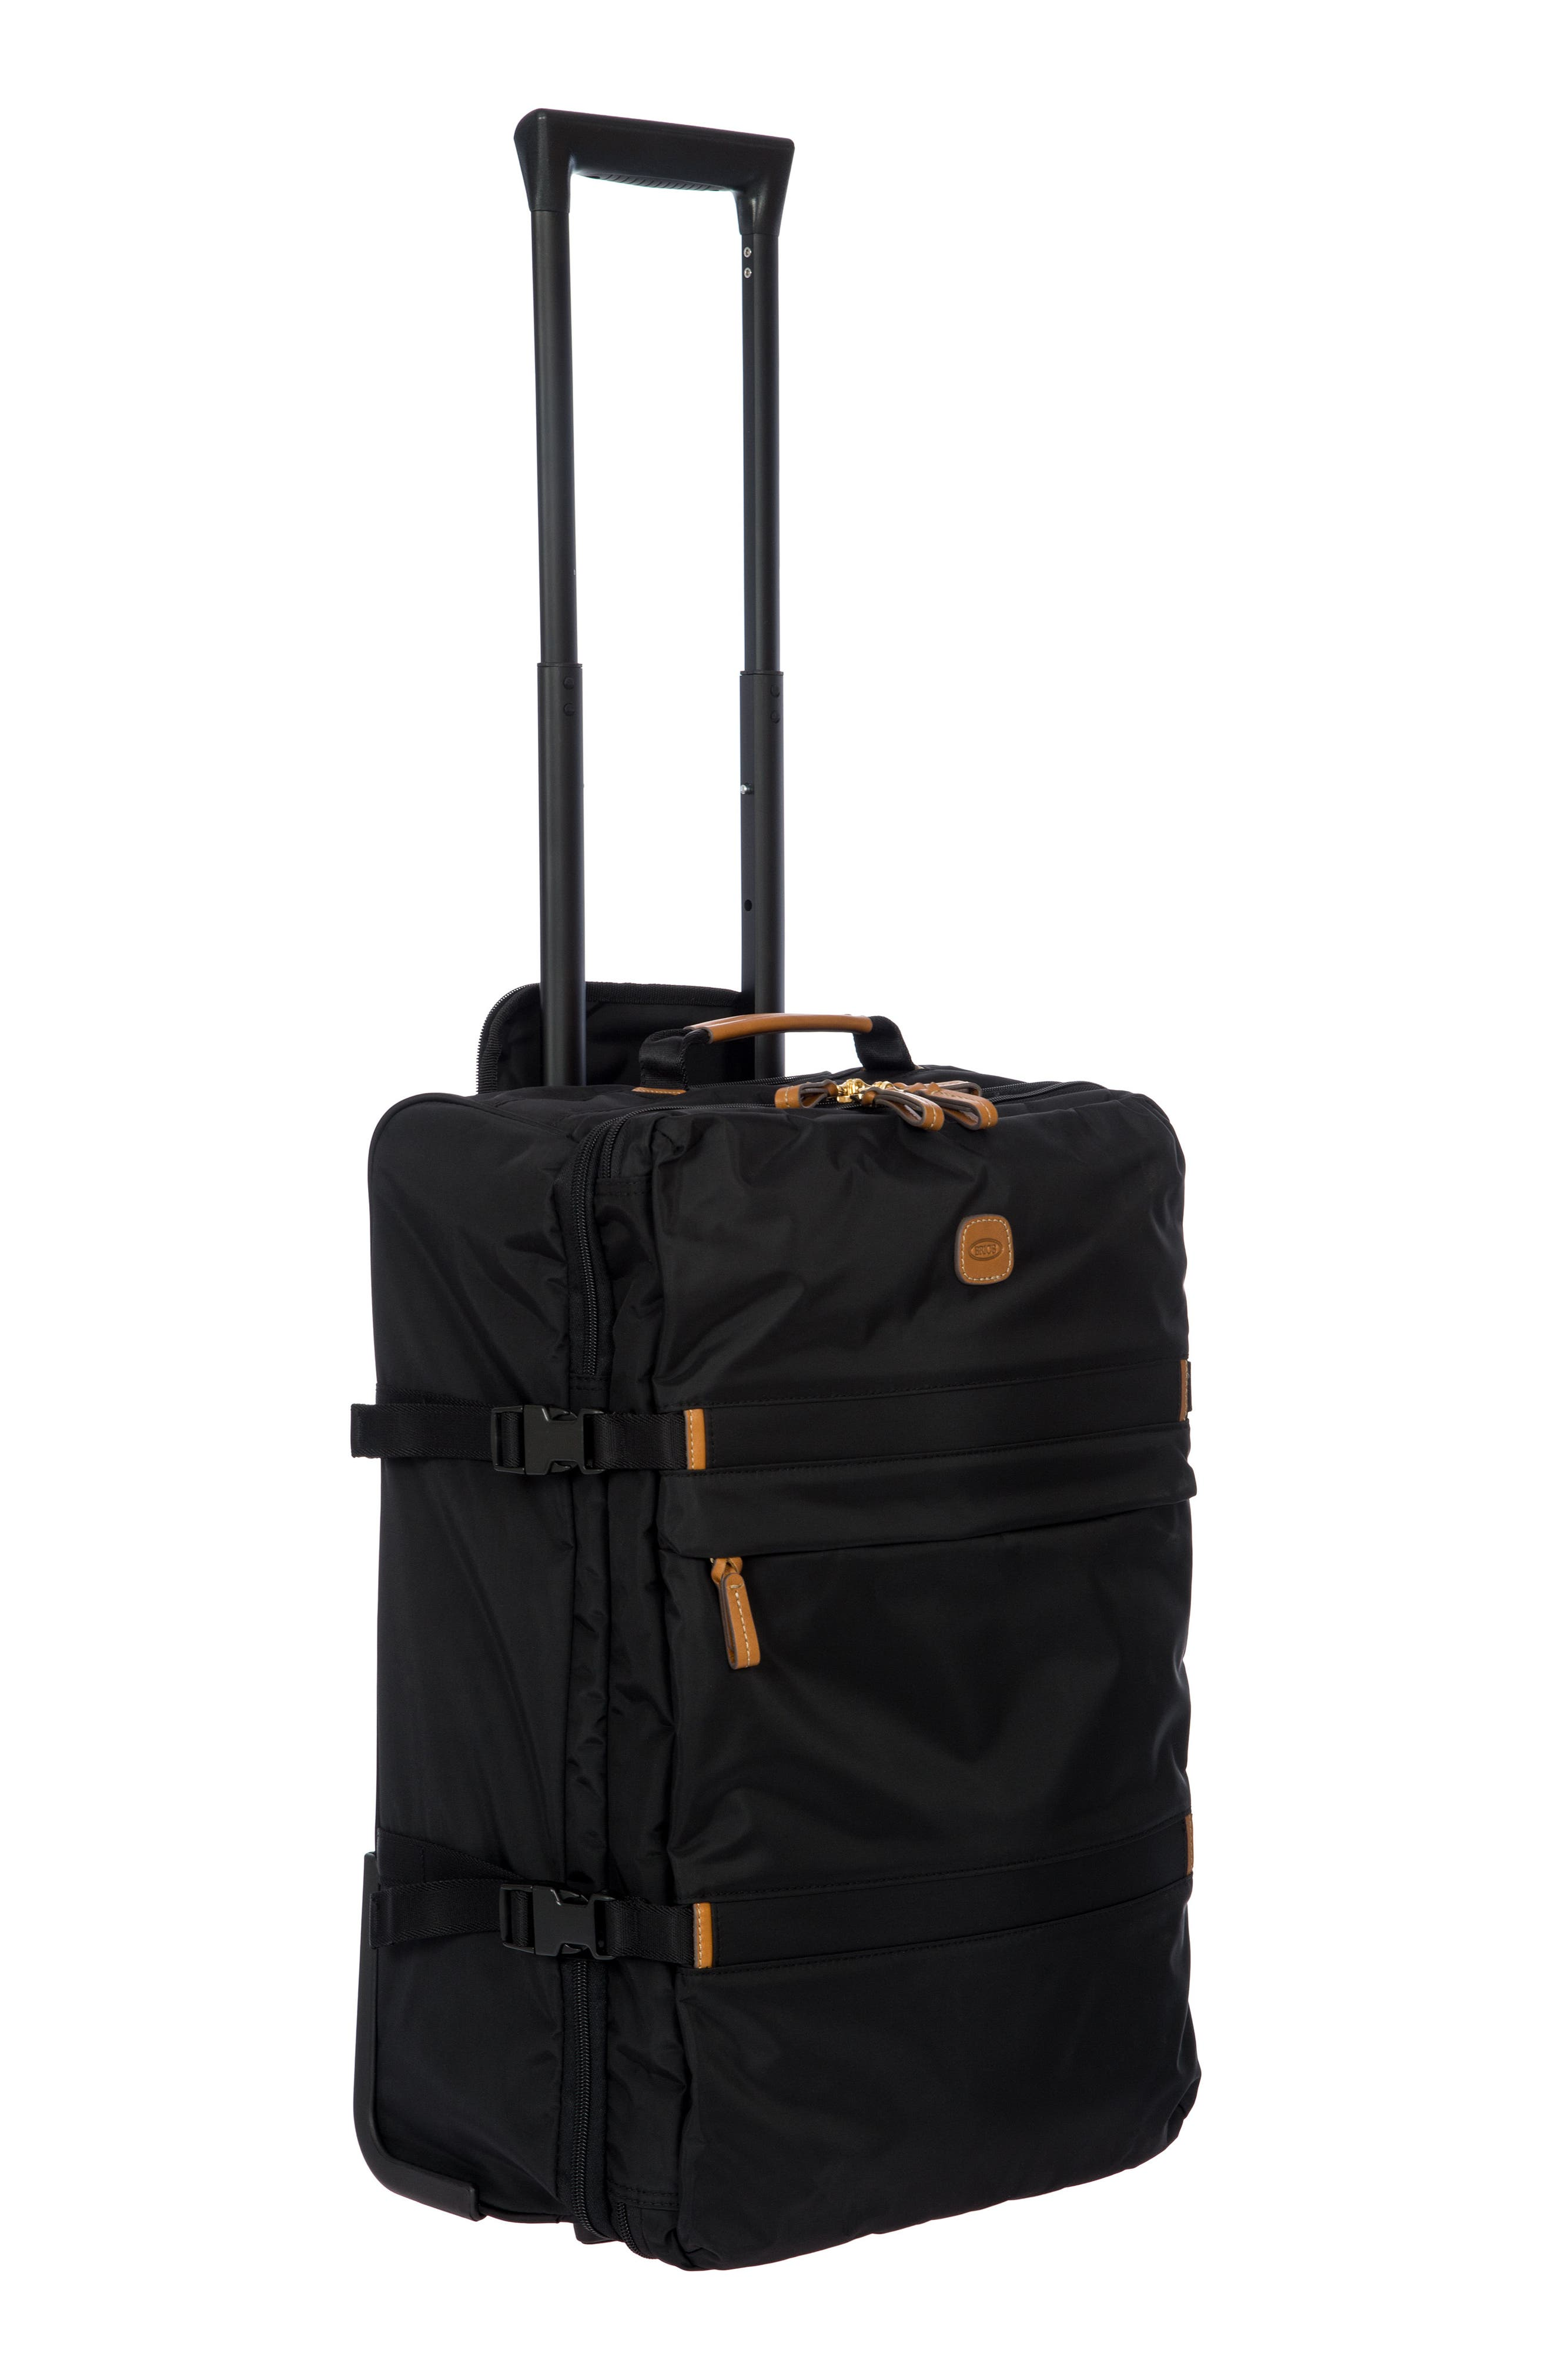 """BRIC'S X-TRAVEL 21"""" MONTAGNA CARRY-ON TROLLEY LUGGAGE, BLACK"""